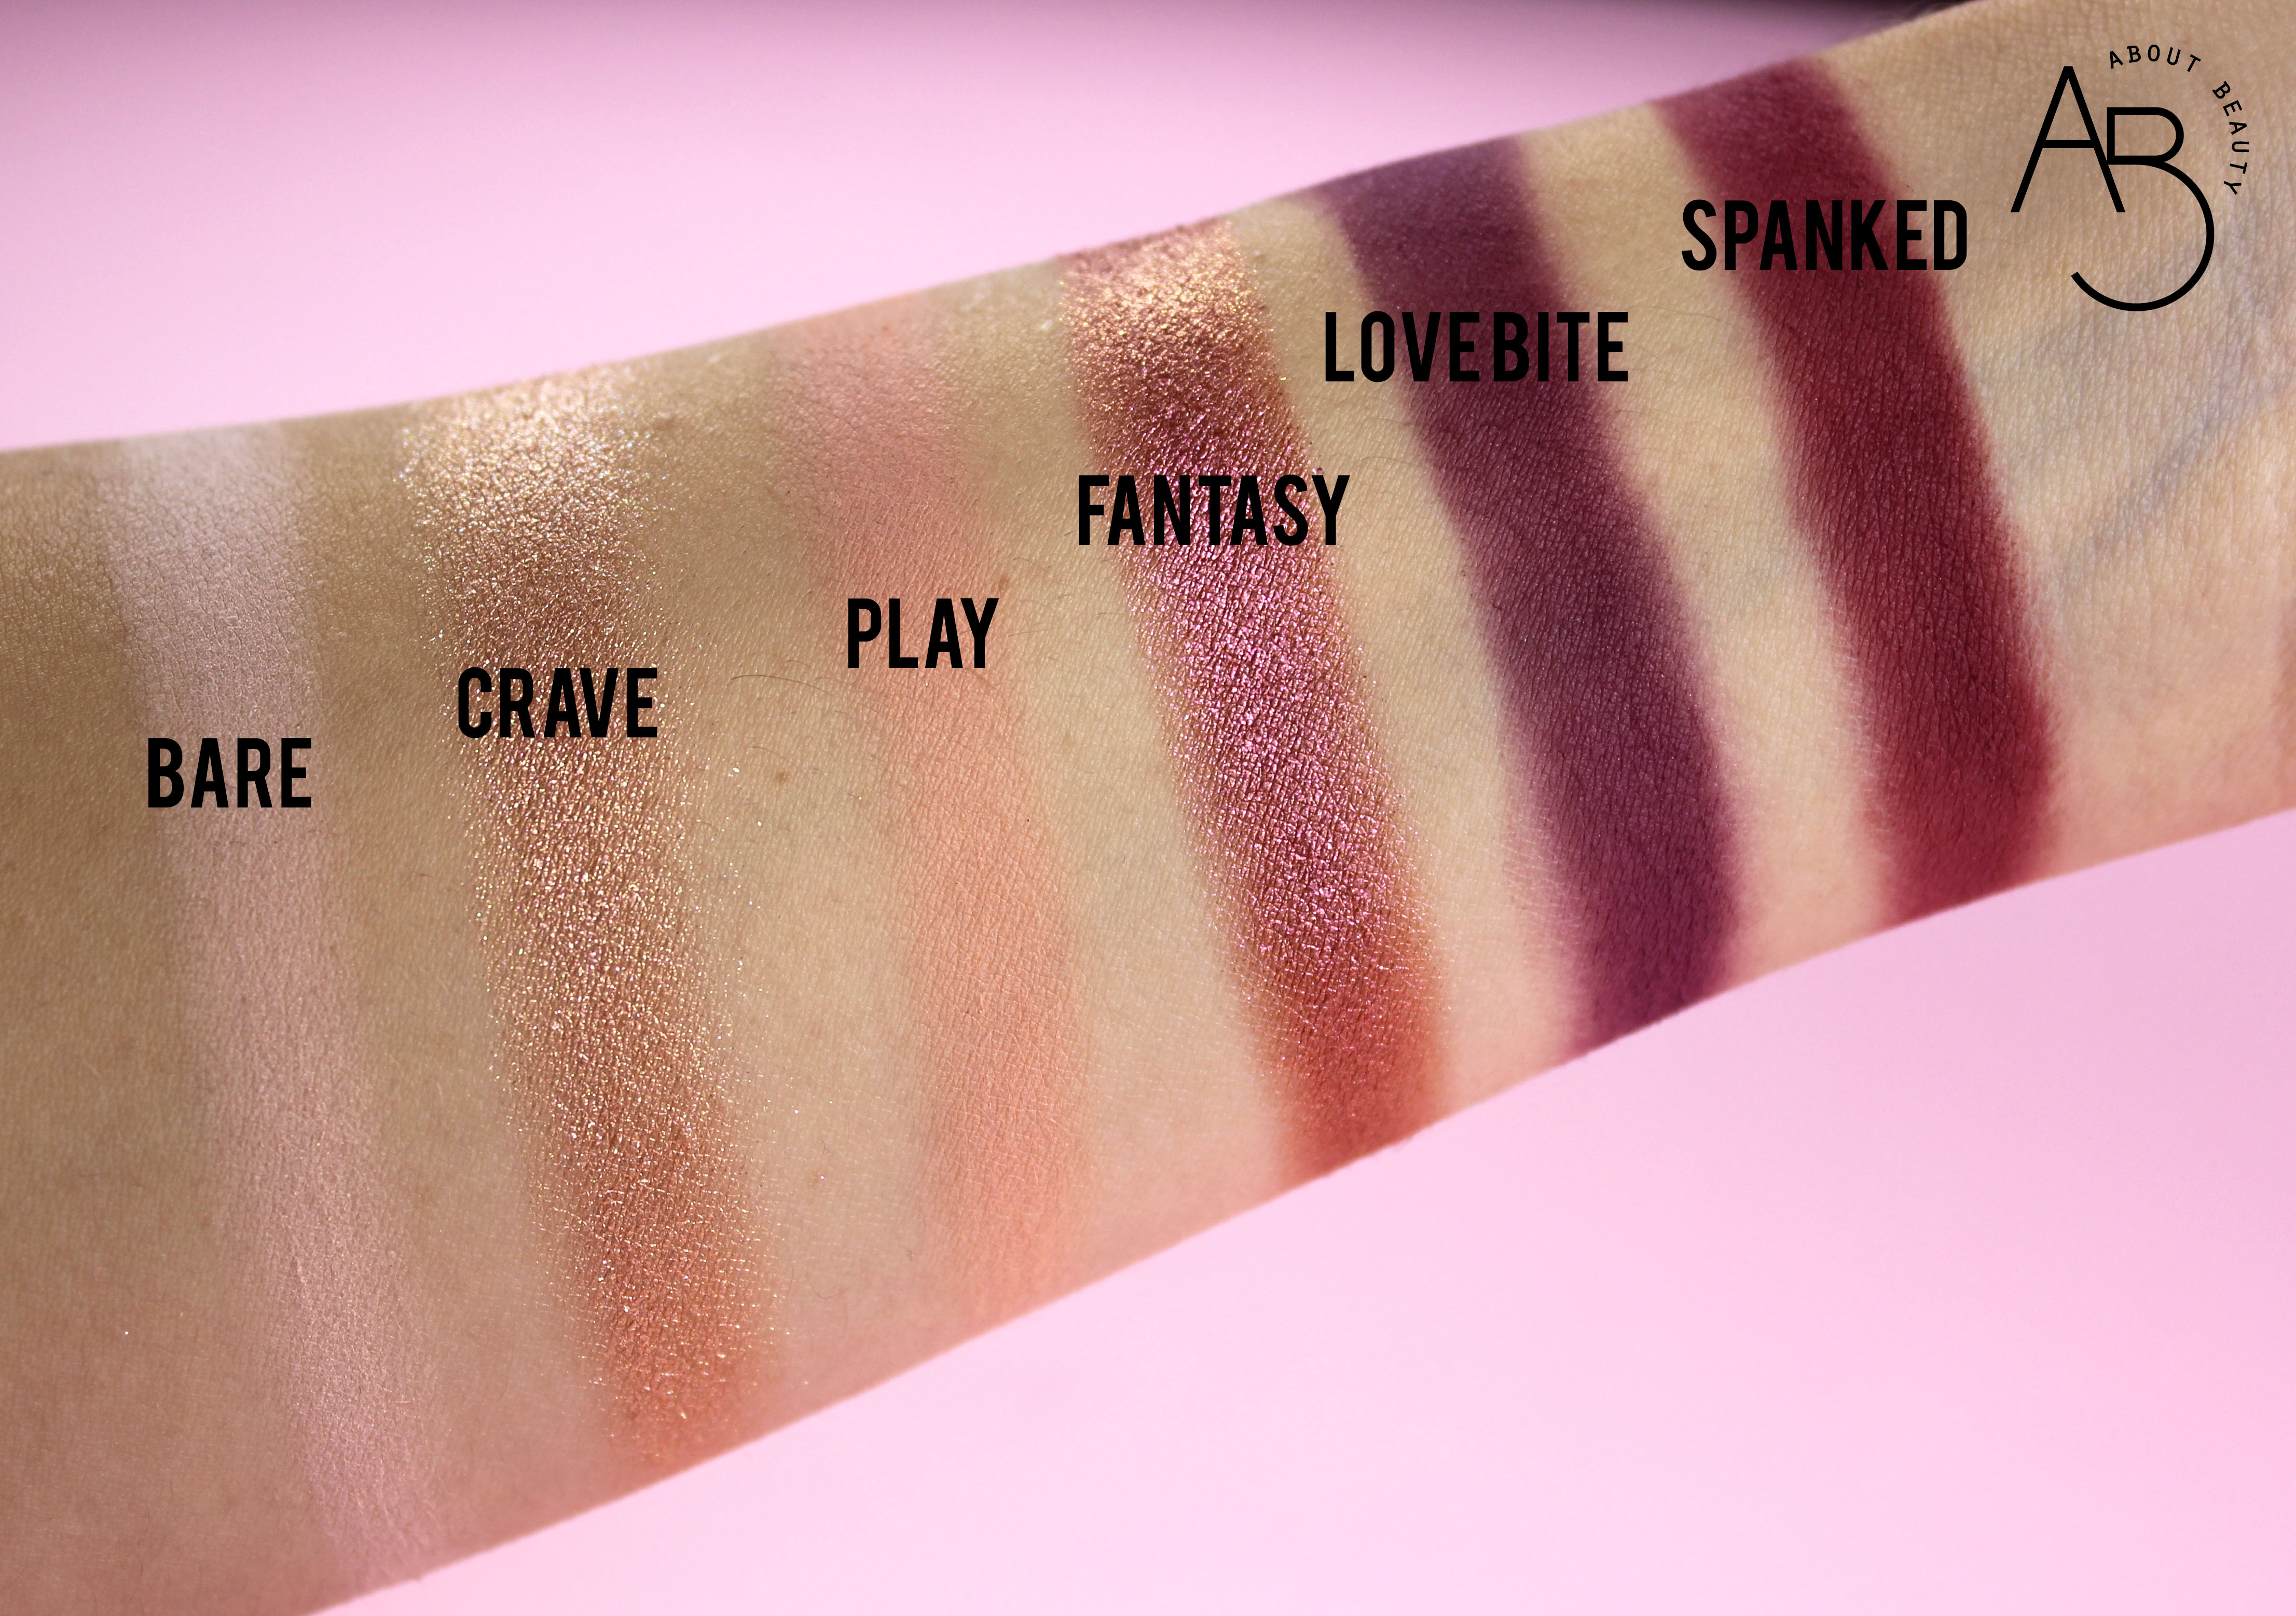 Huda Beauty New Nude Eyeshadow Palette Ombretti - review recensione info prezzo dove acquistare swatch bare crave play fantasy love bite spanked